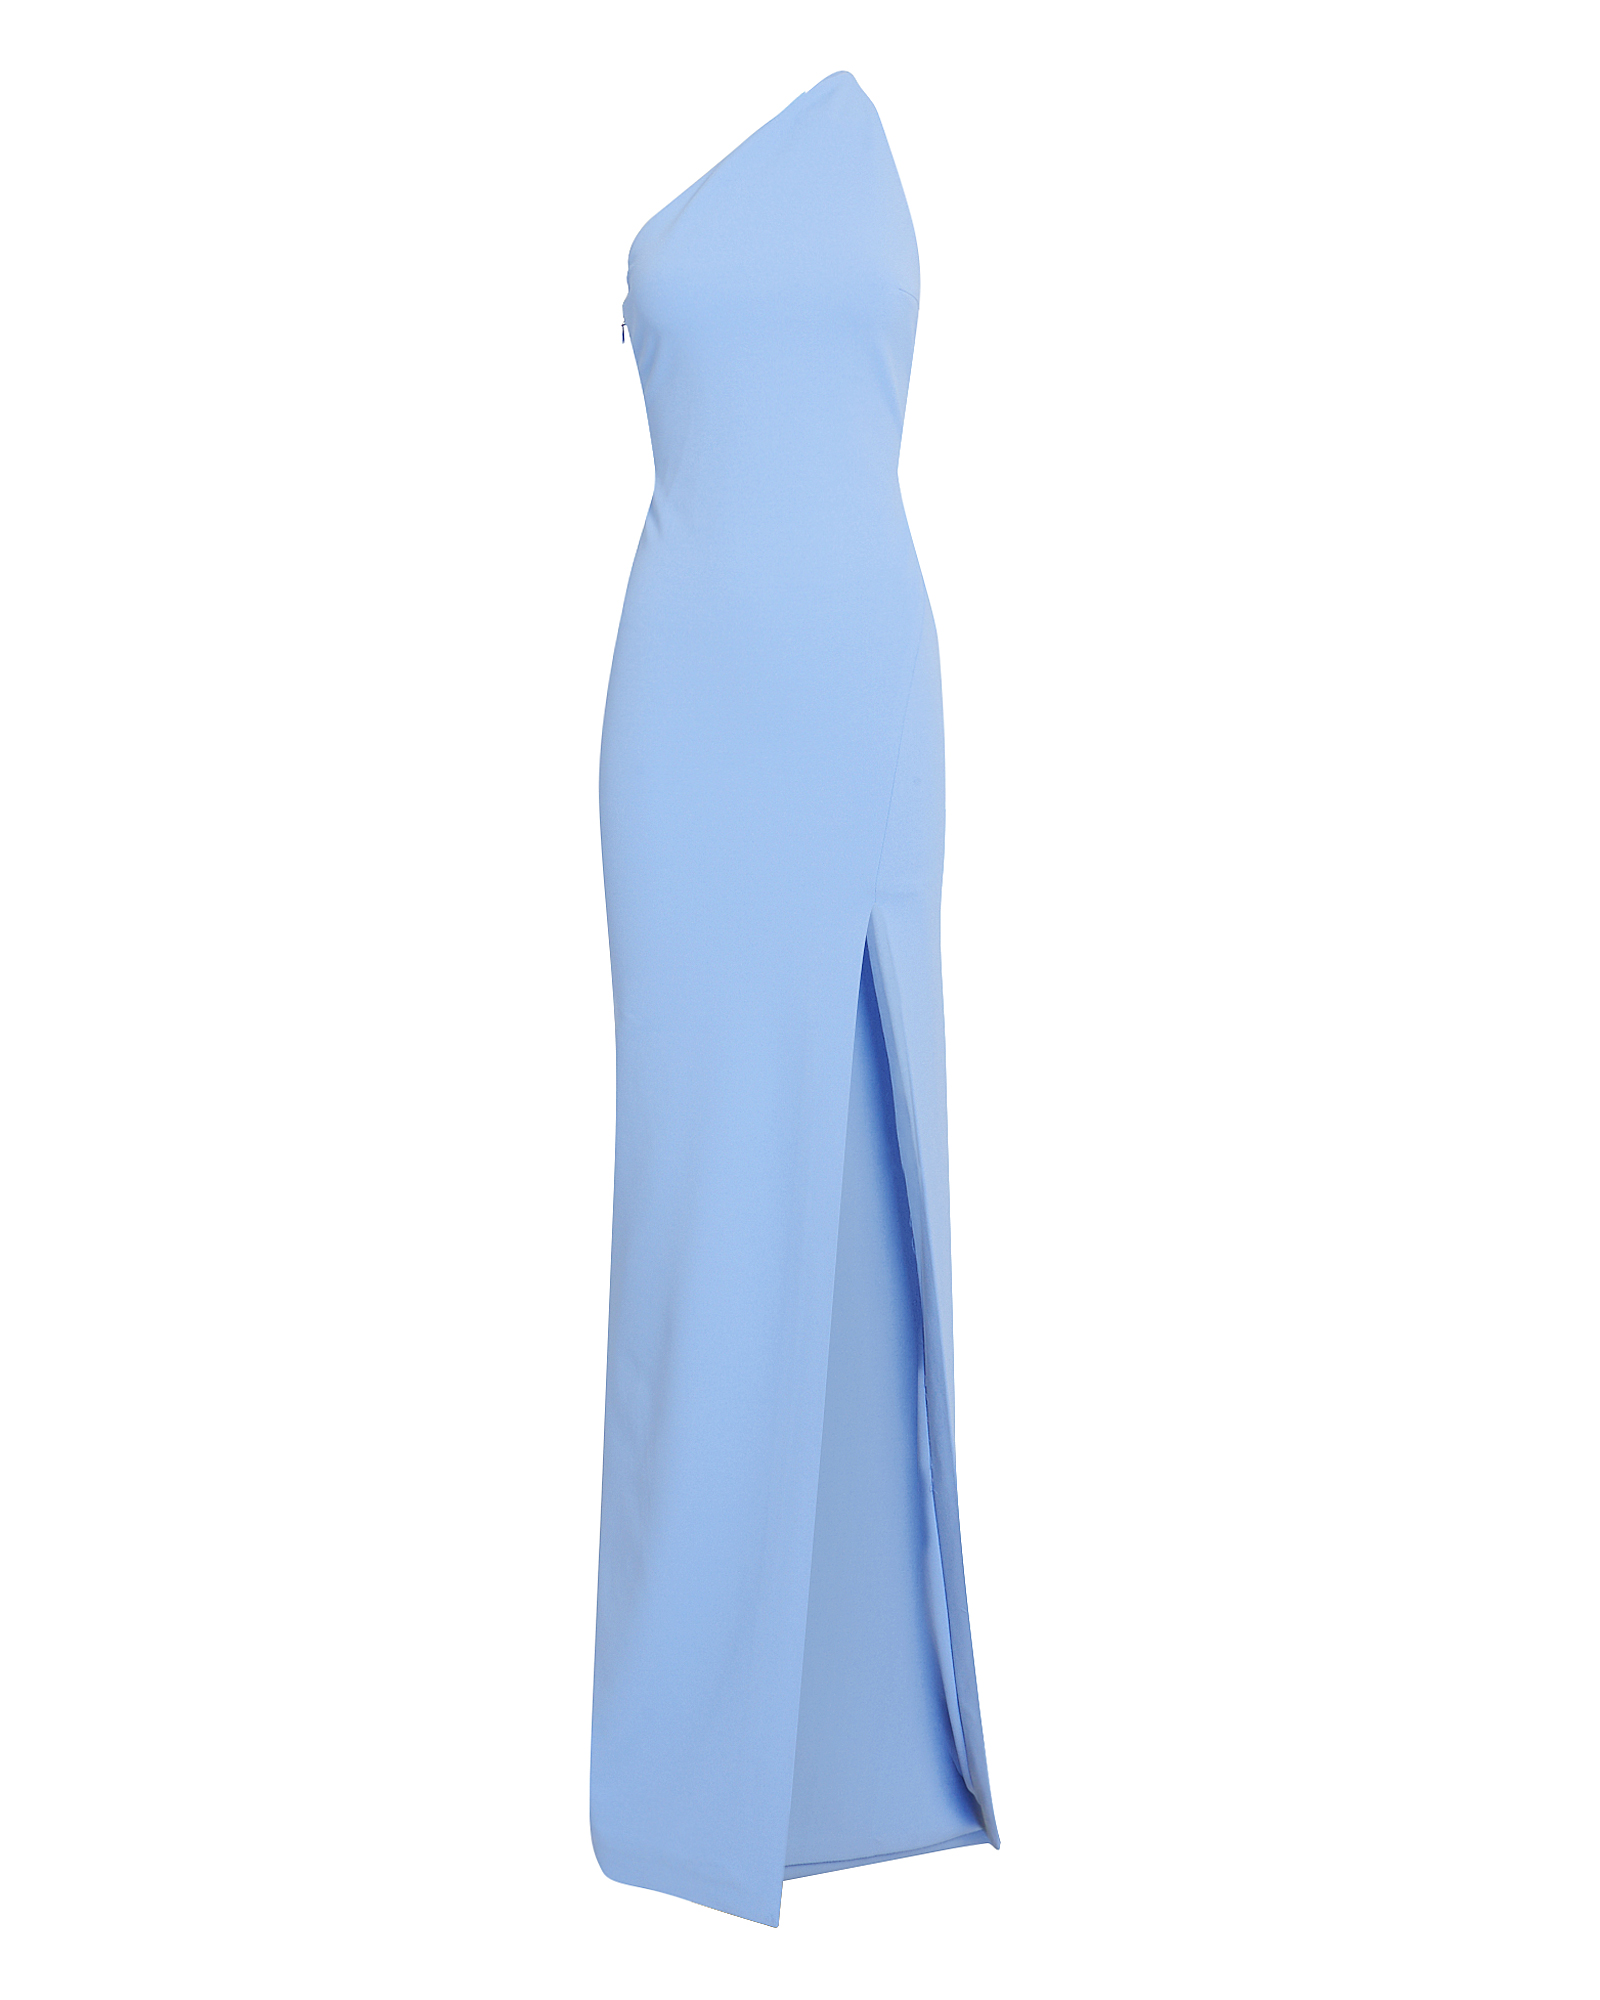 SOLACE London Petch Blue Gown Baby Blue